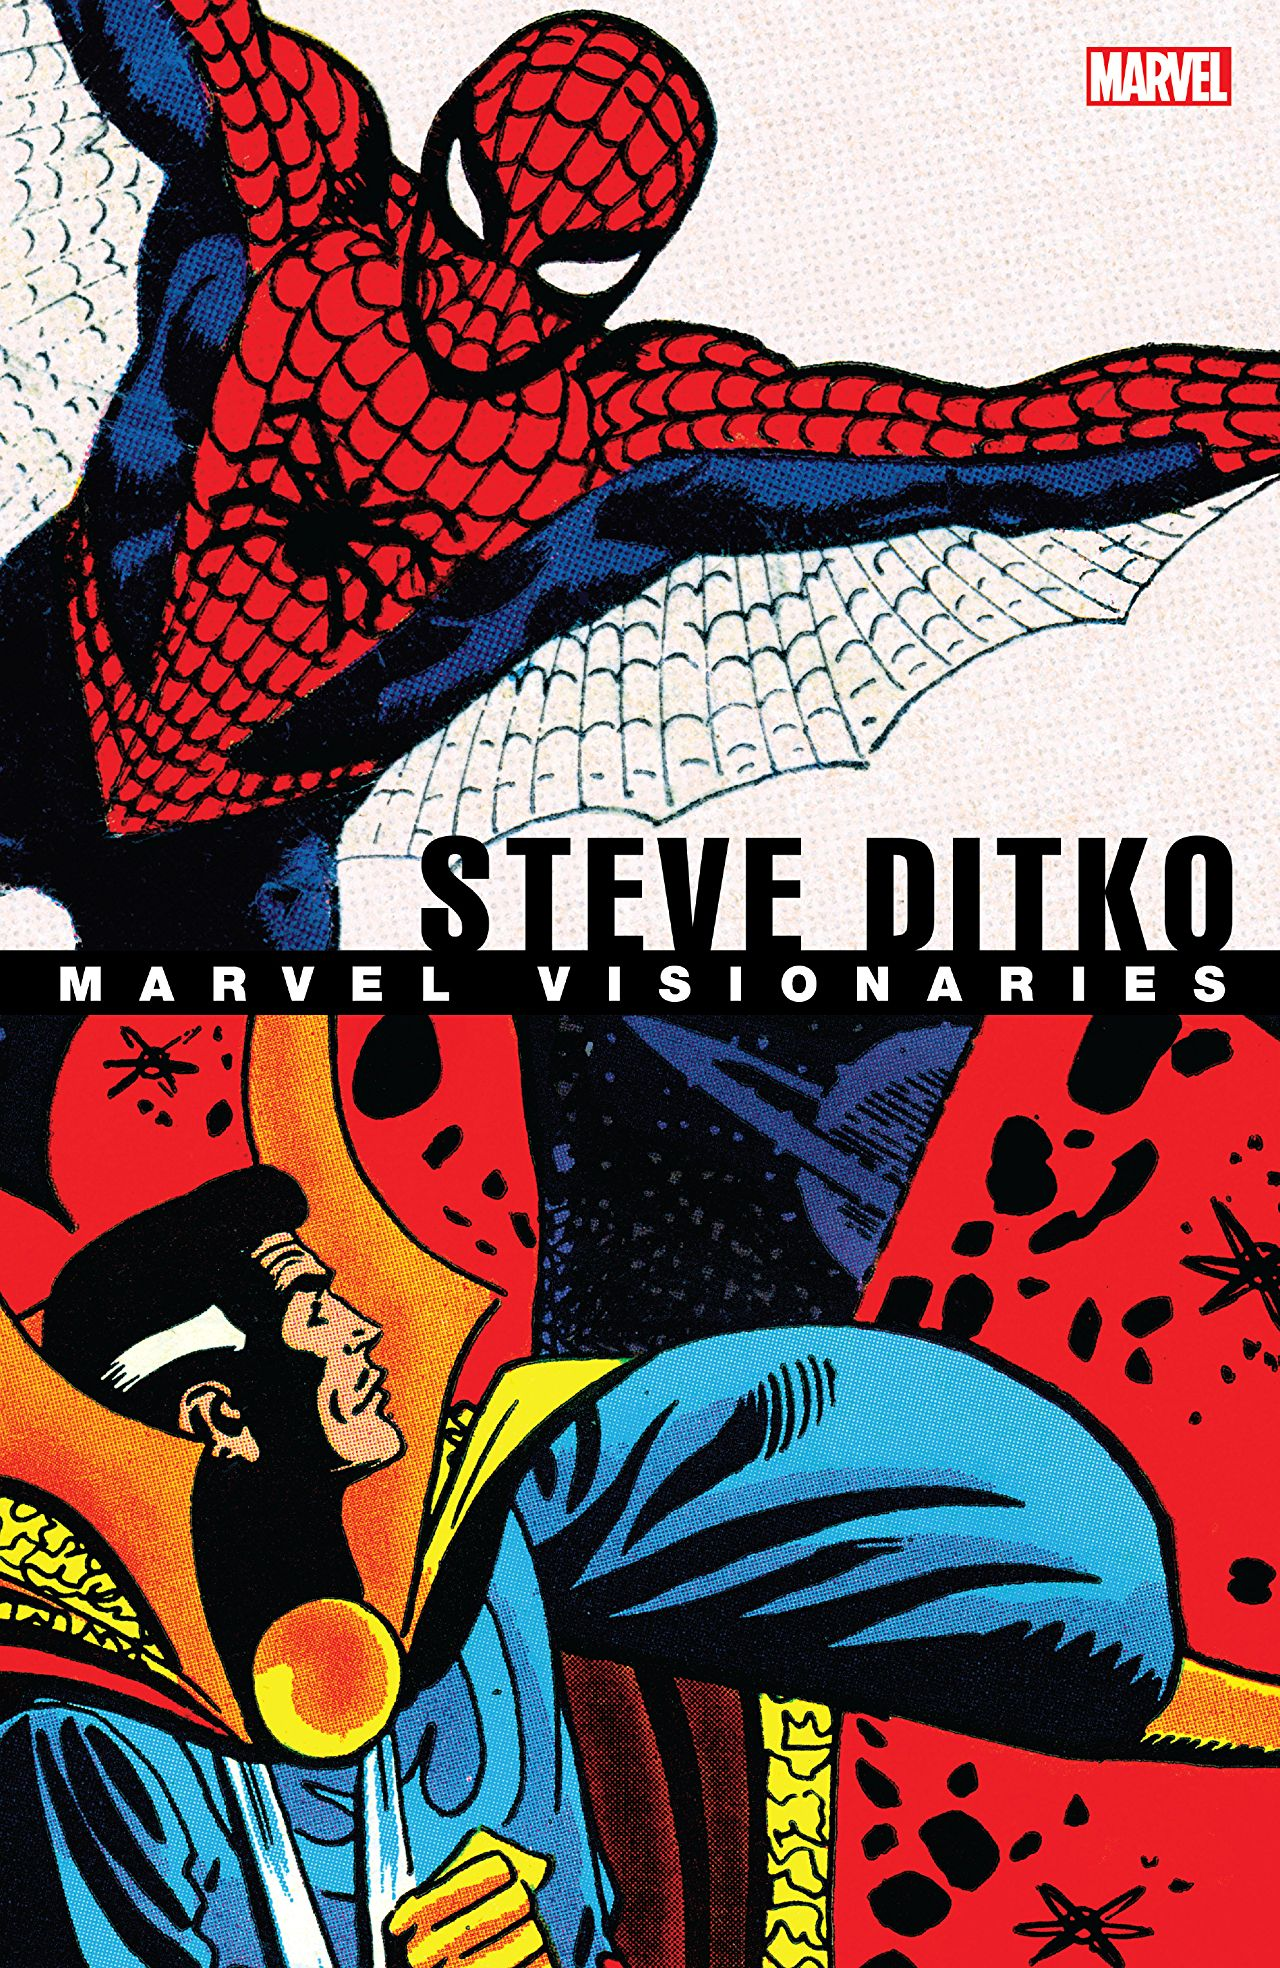 Marvel Visionaries: Steve Ditko Review